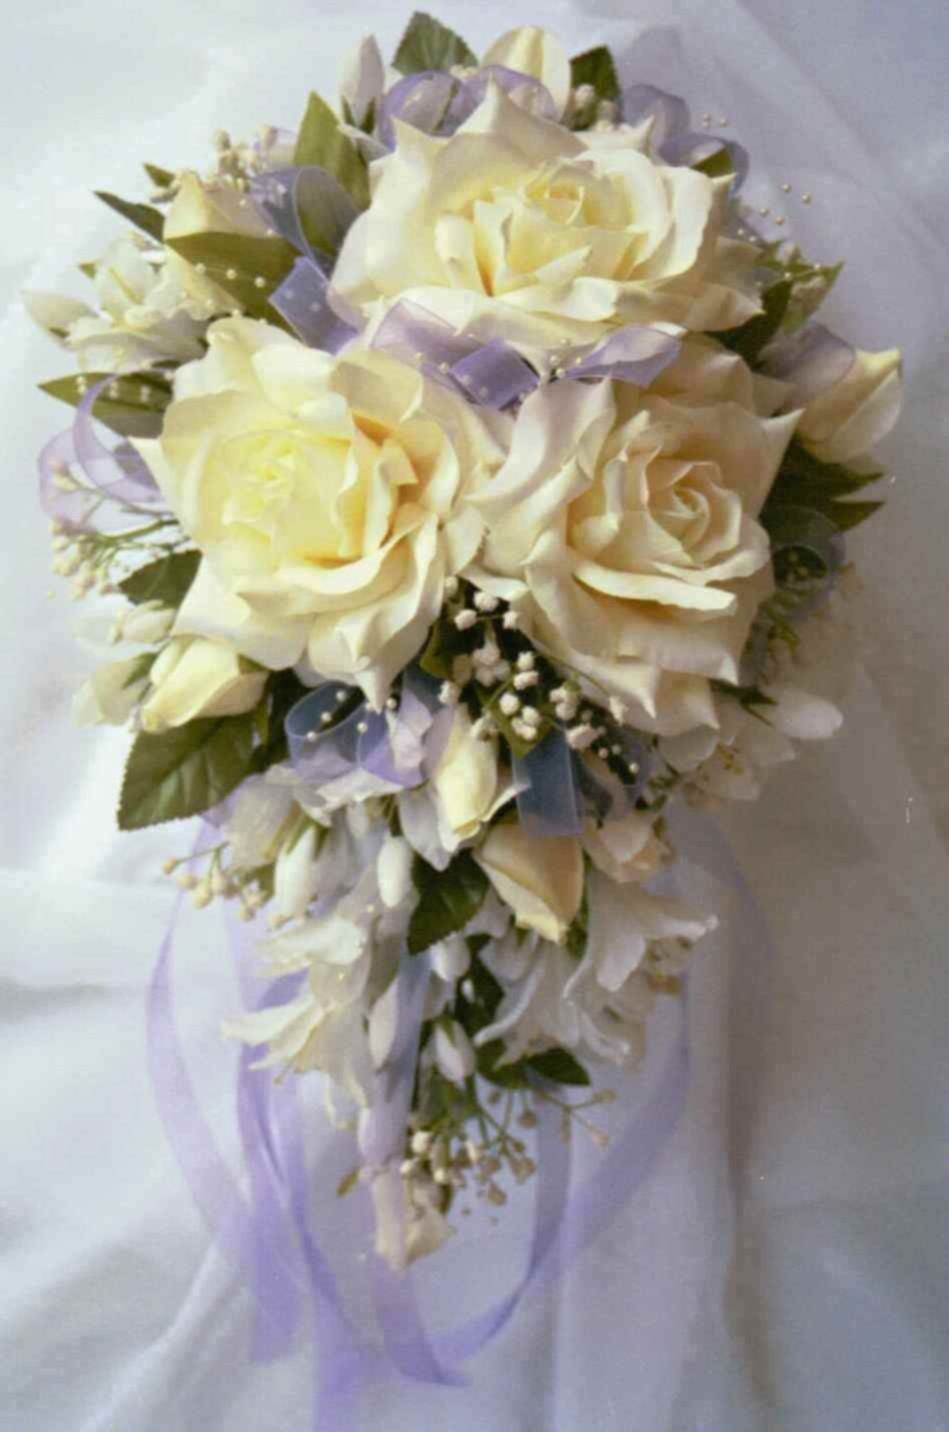 Buy Silk Wedding Flowers Online And Get An Entirely New Genre Of